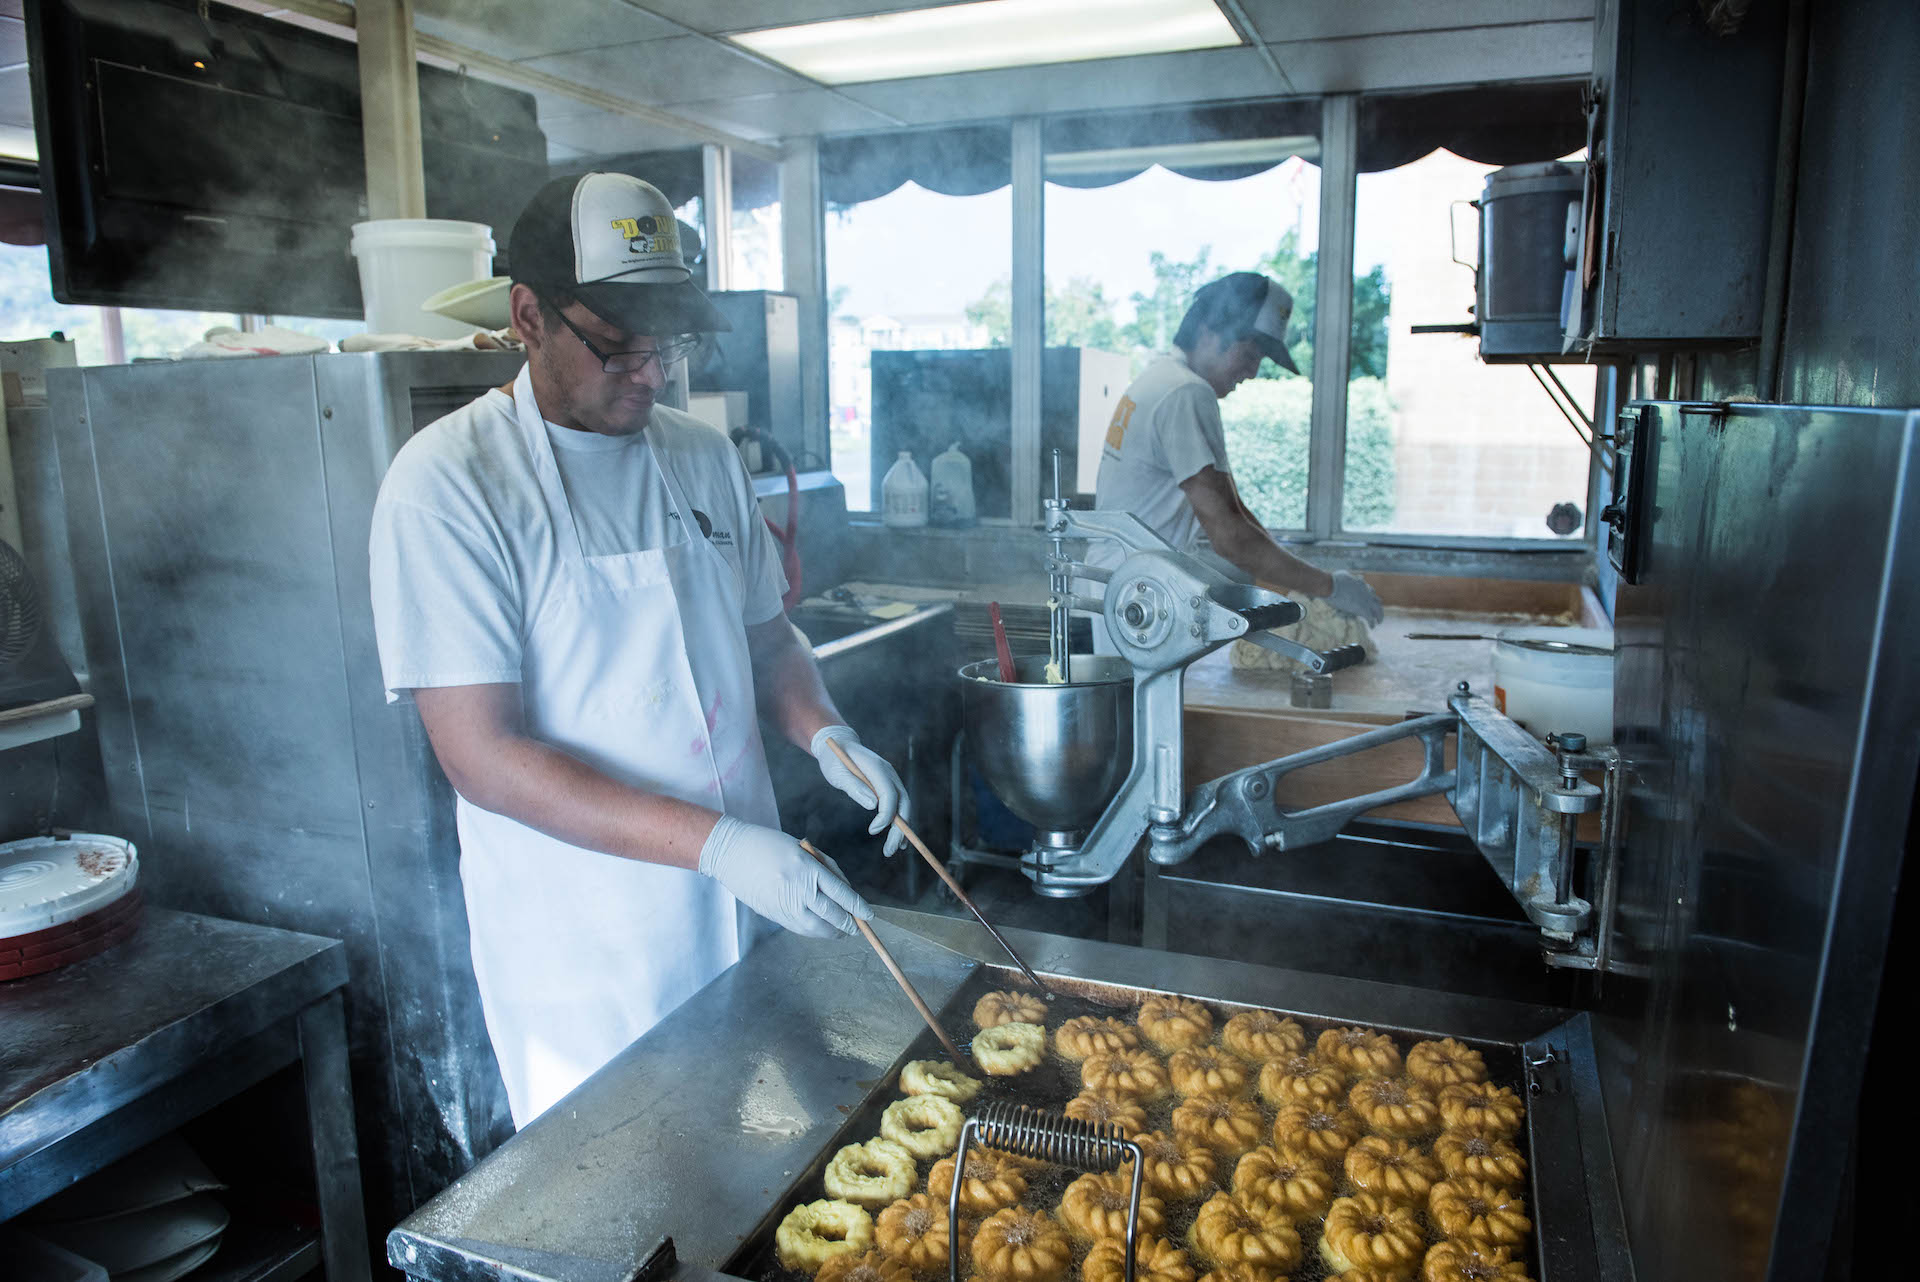 All the donuts are fresh and hand-made.